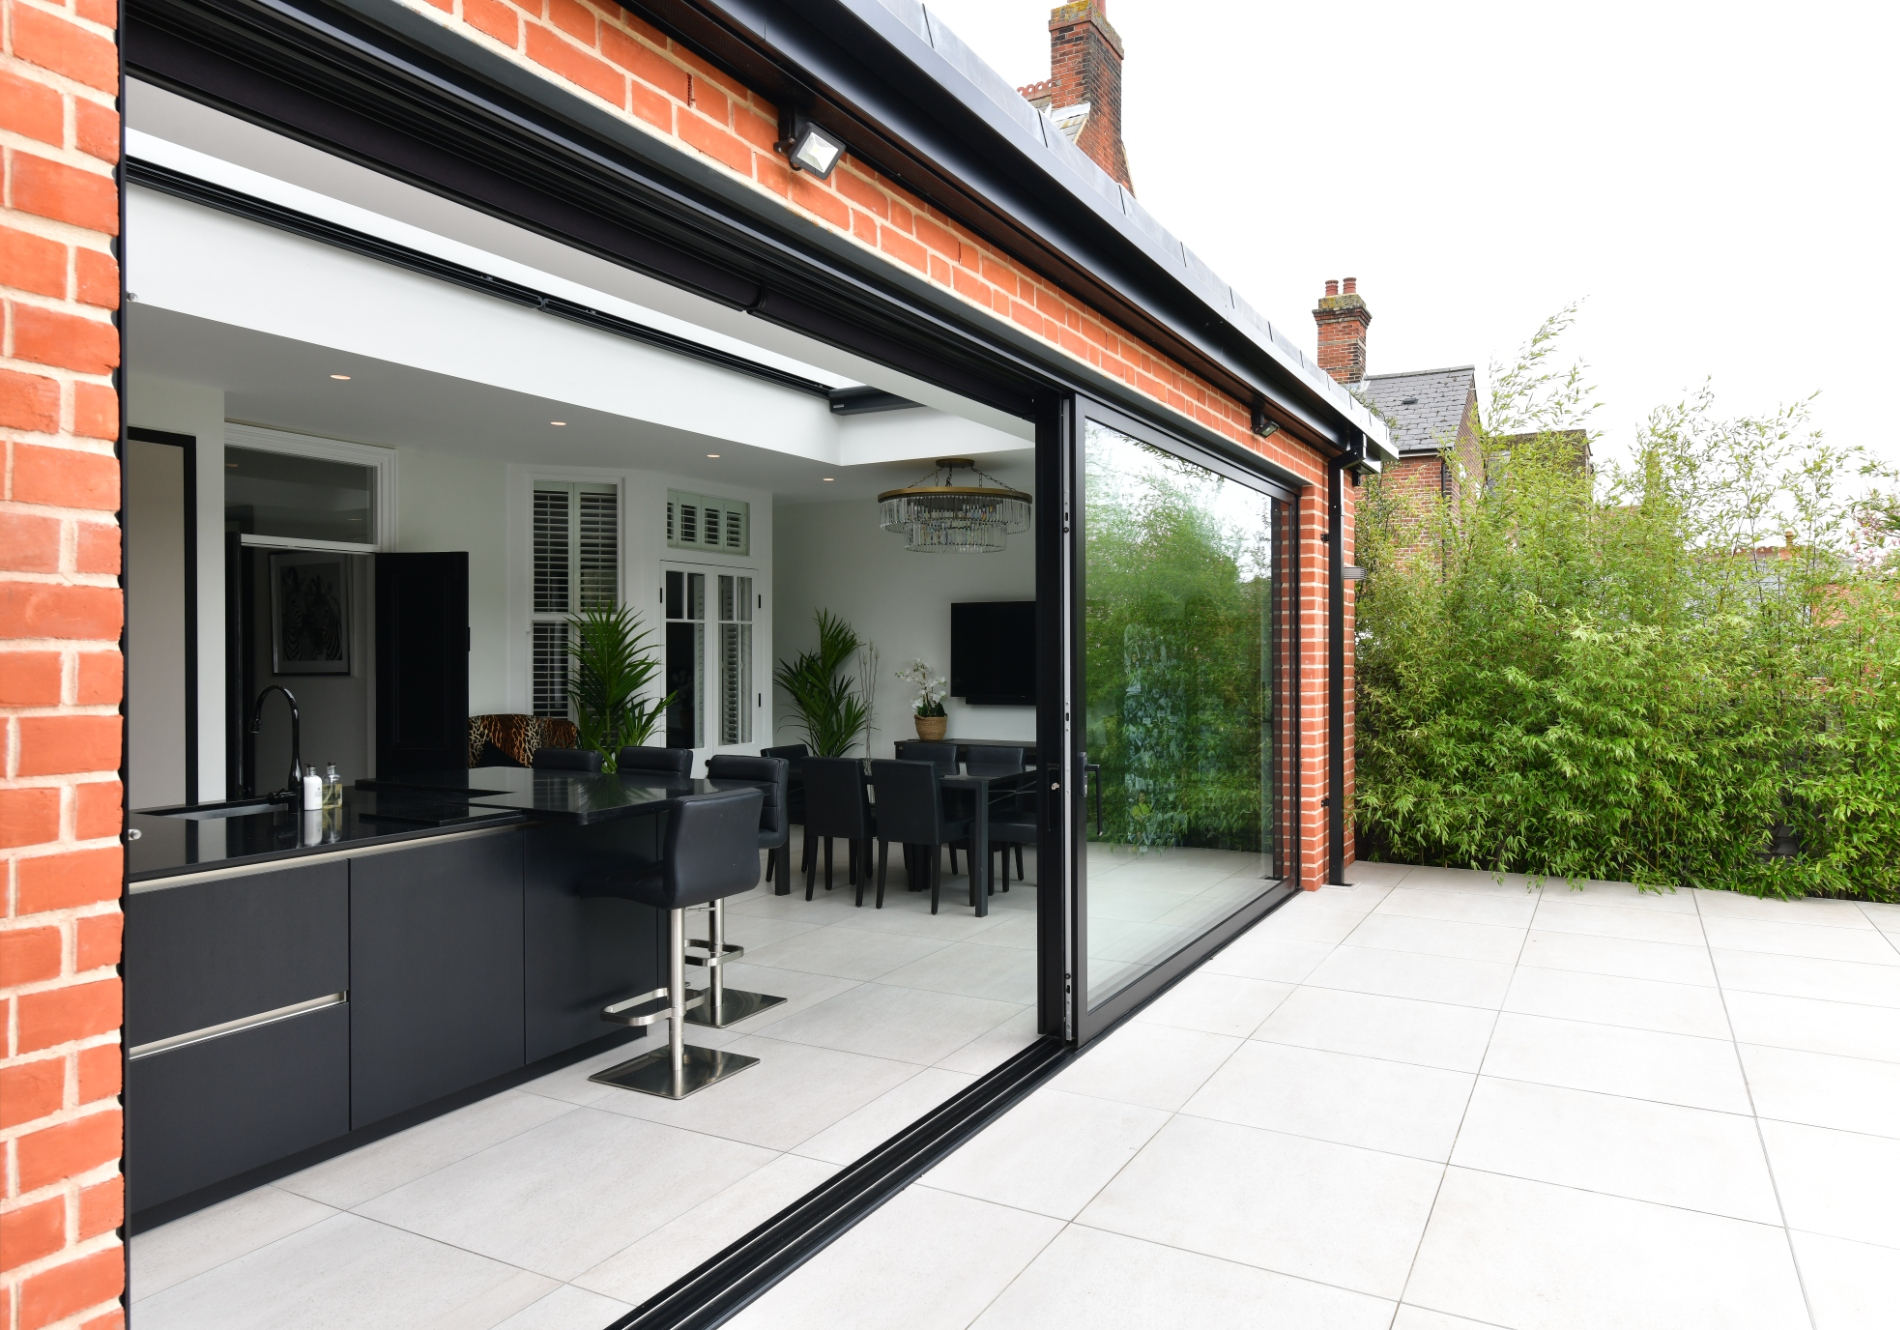 Colchester rear extension featuring Glide S sliding Doors with a flush threshold for step free access